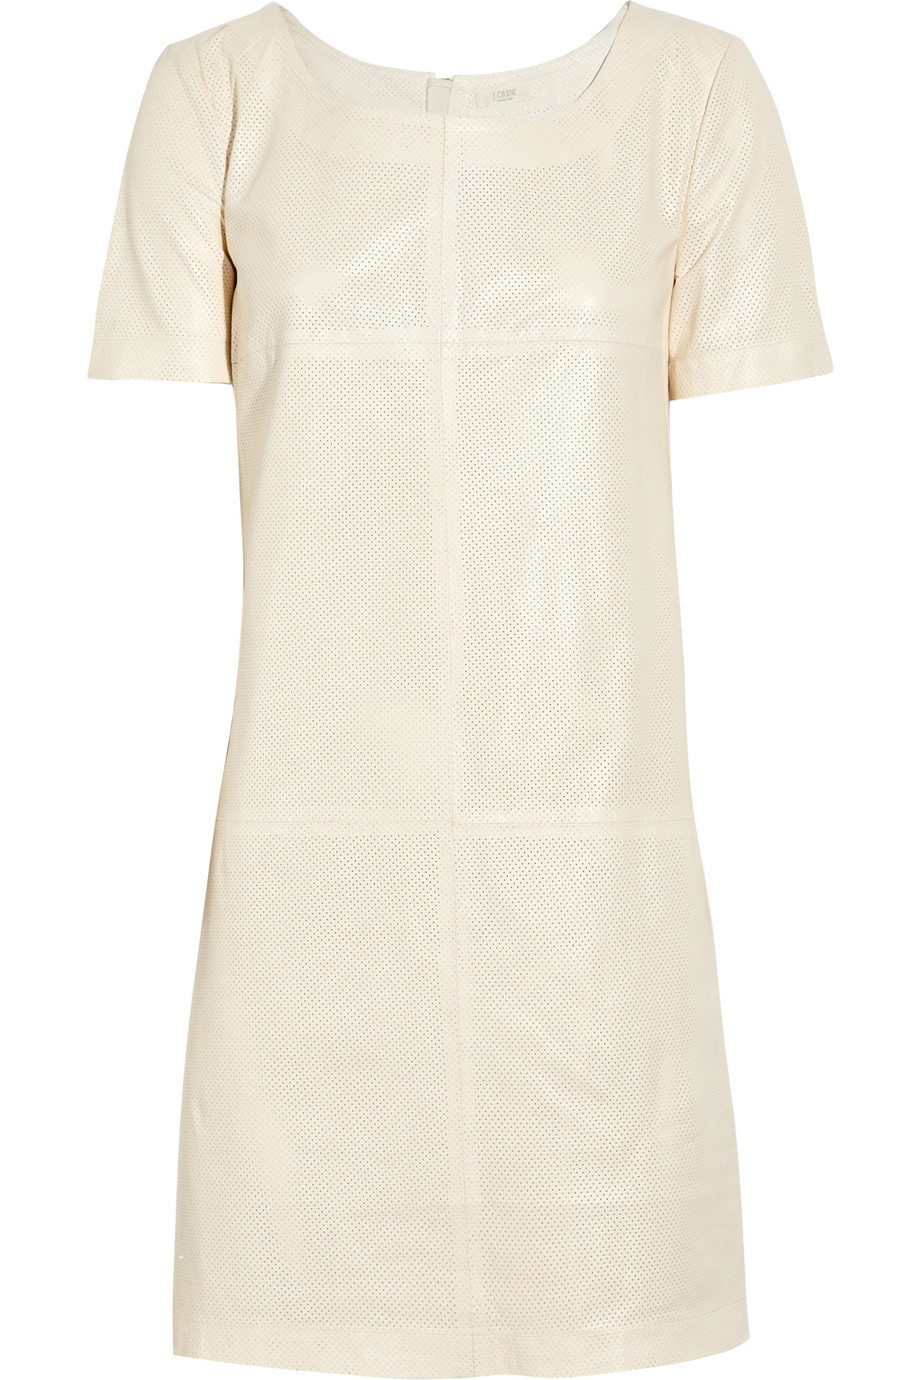 J.Crew Perforated Leather Shift Dress, Size: 6